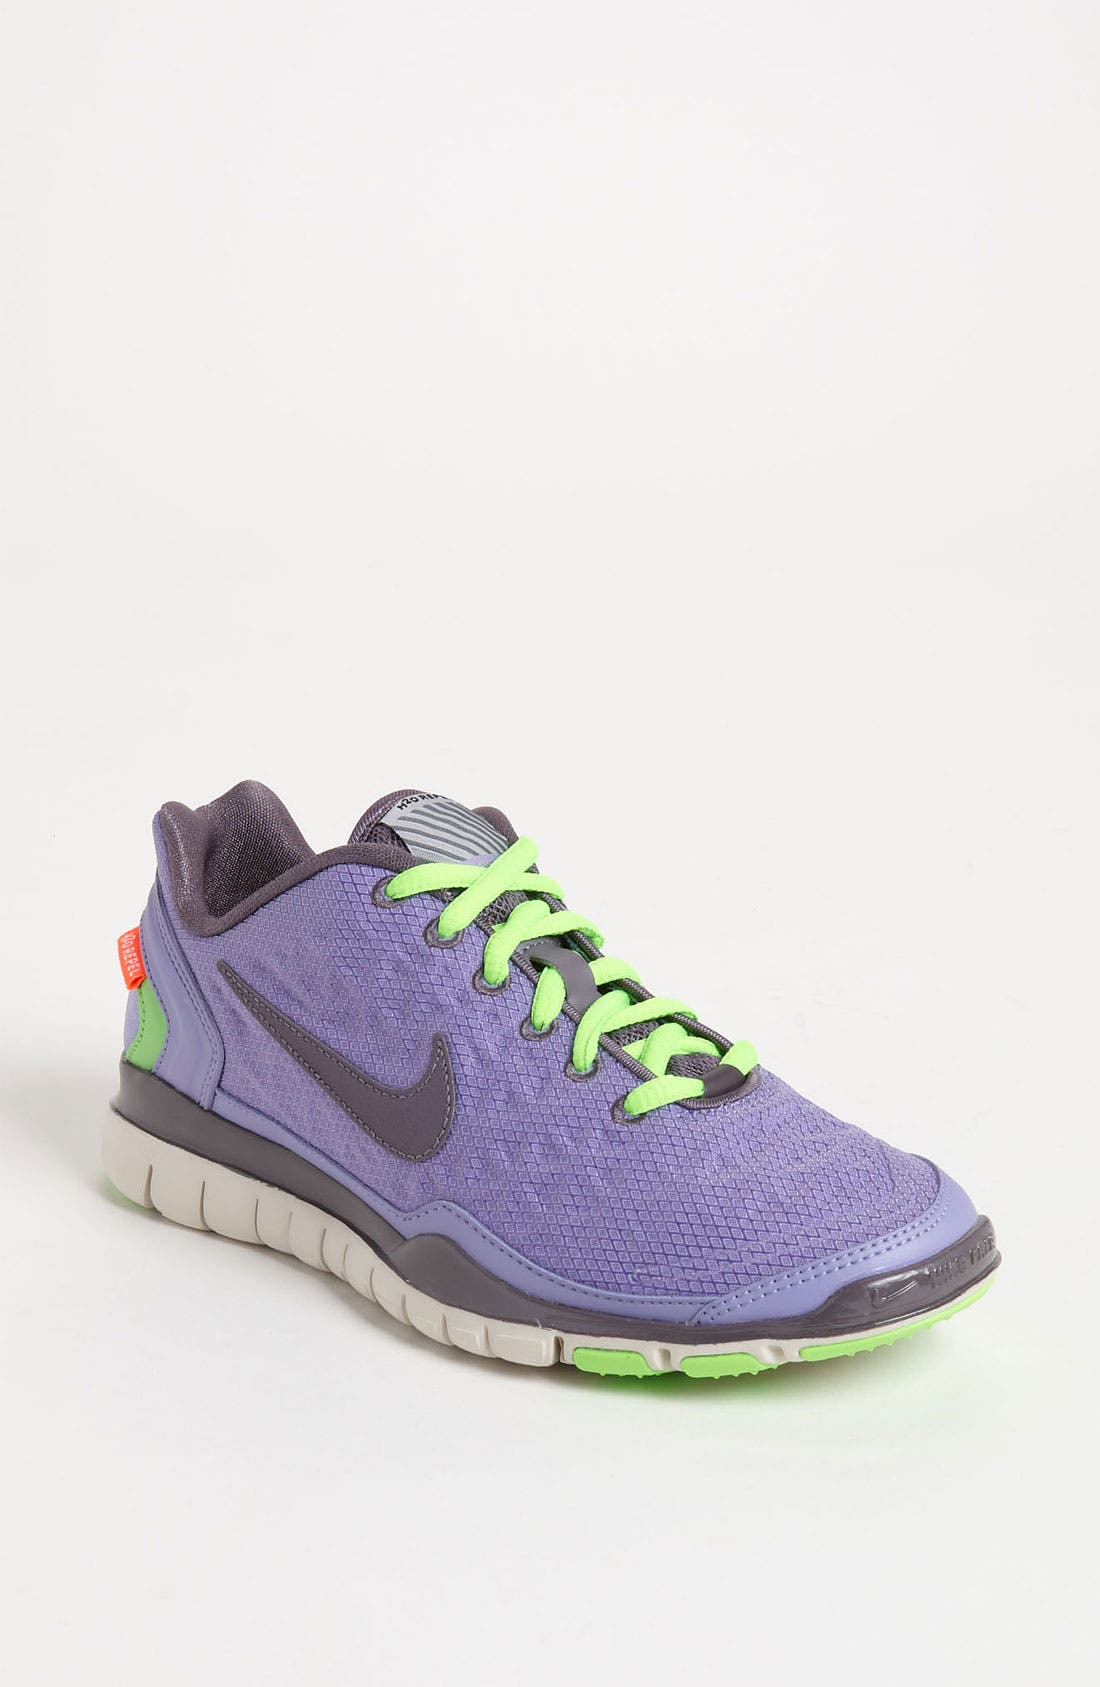 Main Image - Nike 'Free TR Fit 2 Shield' Training Shoe (Women)